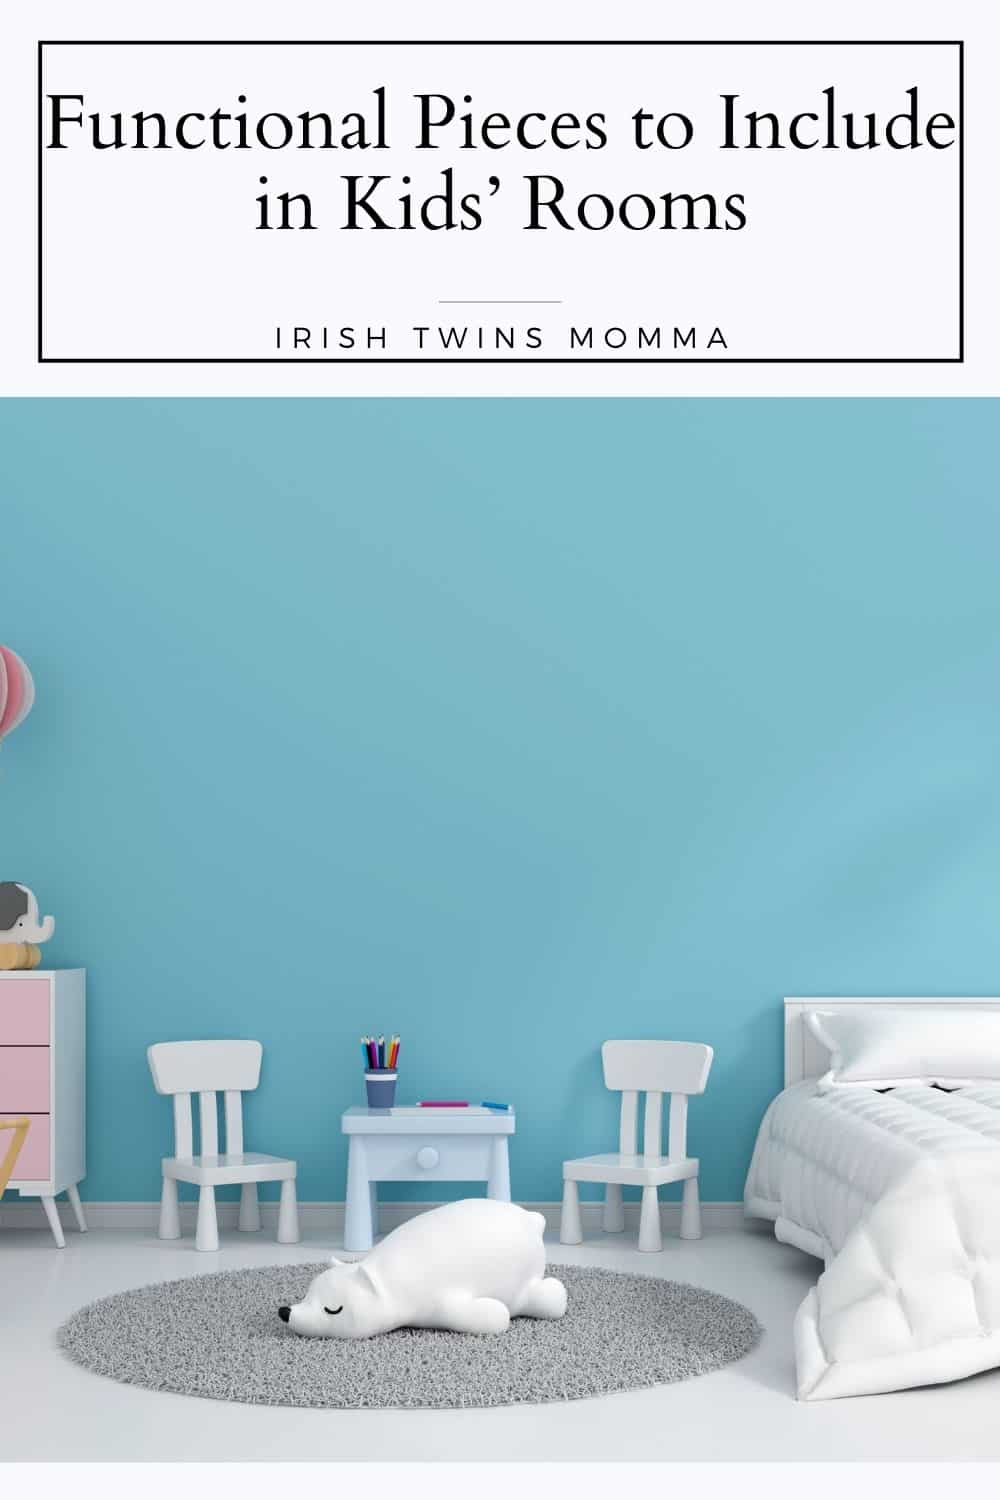 Functional Pieces to Include in Kids' Rooms